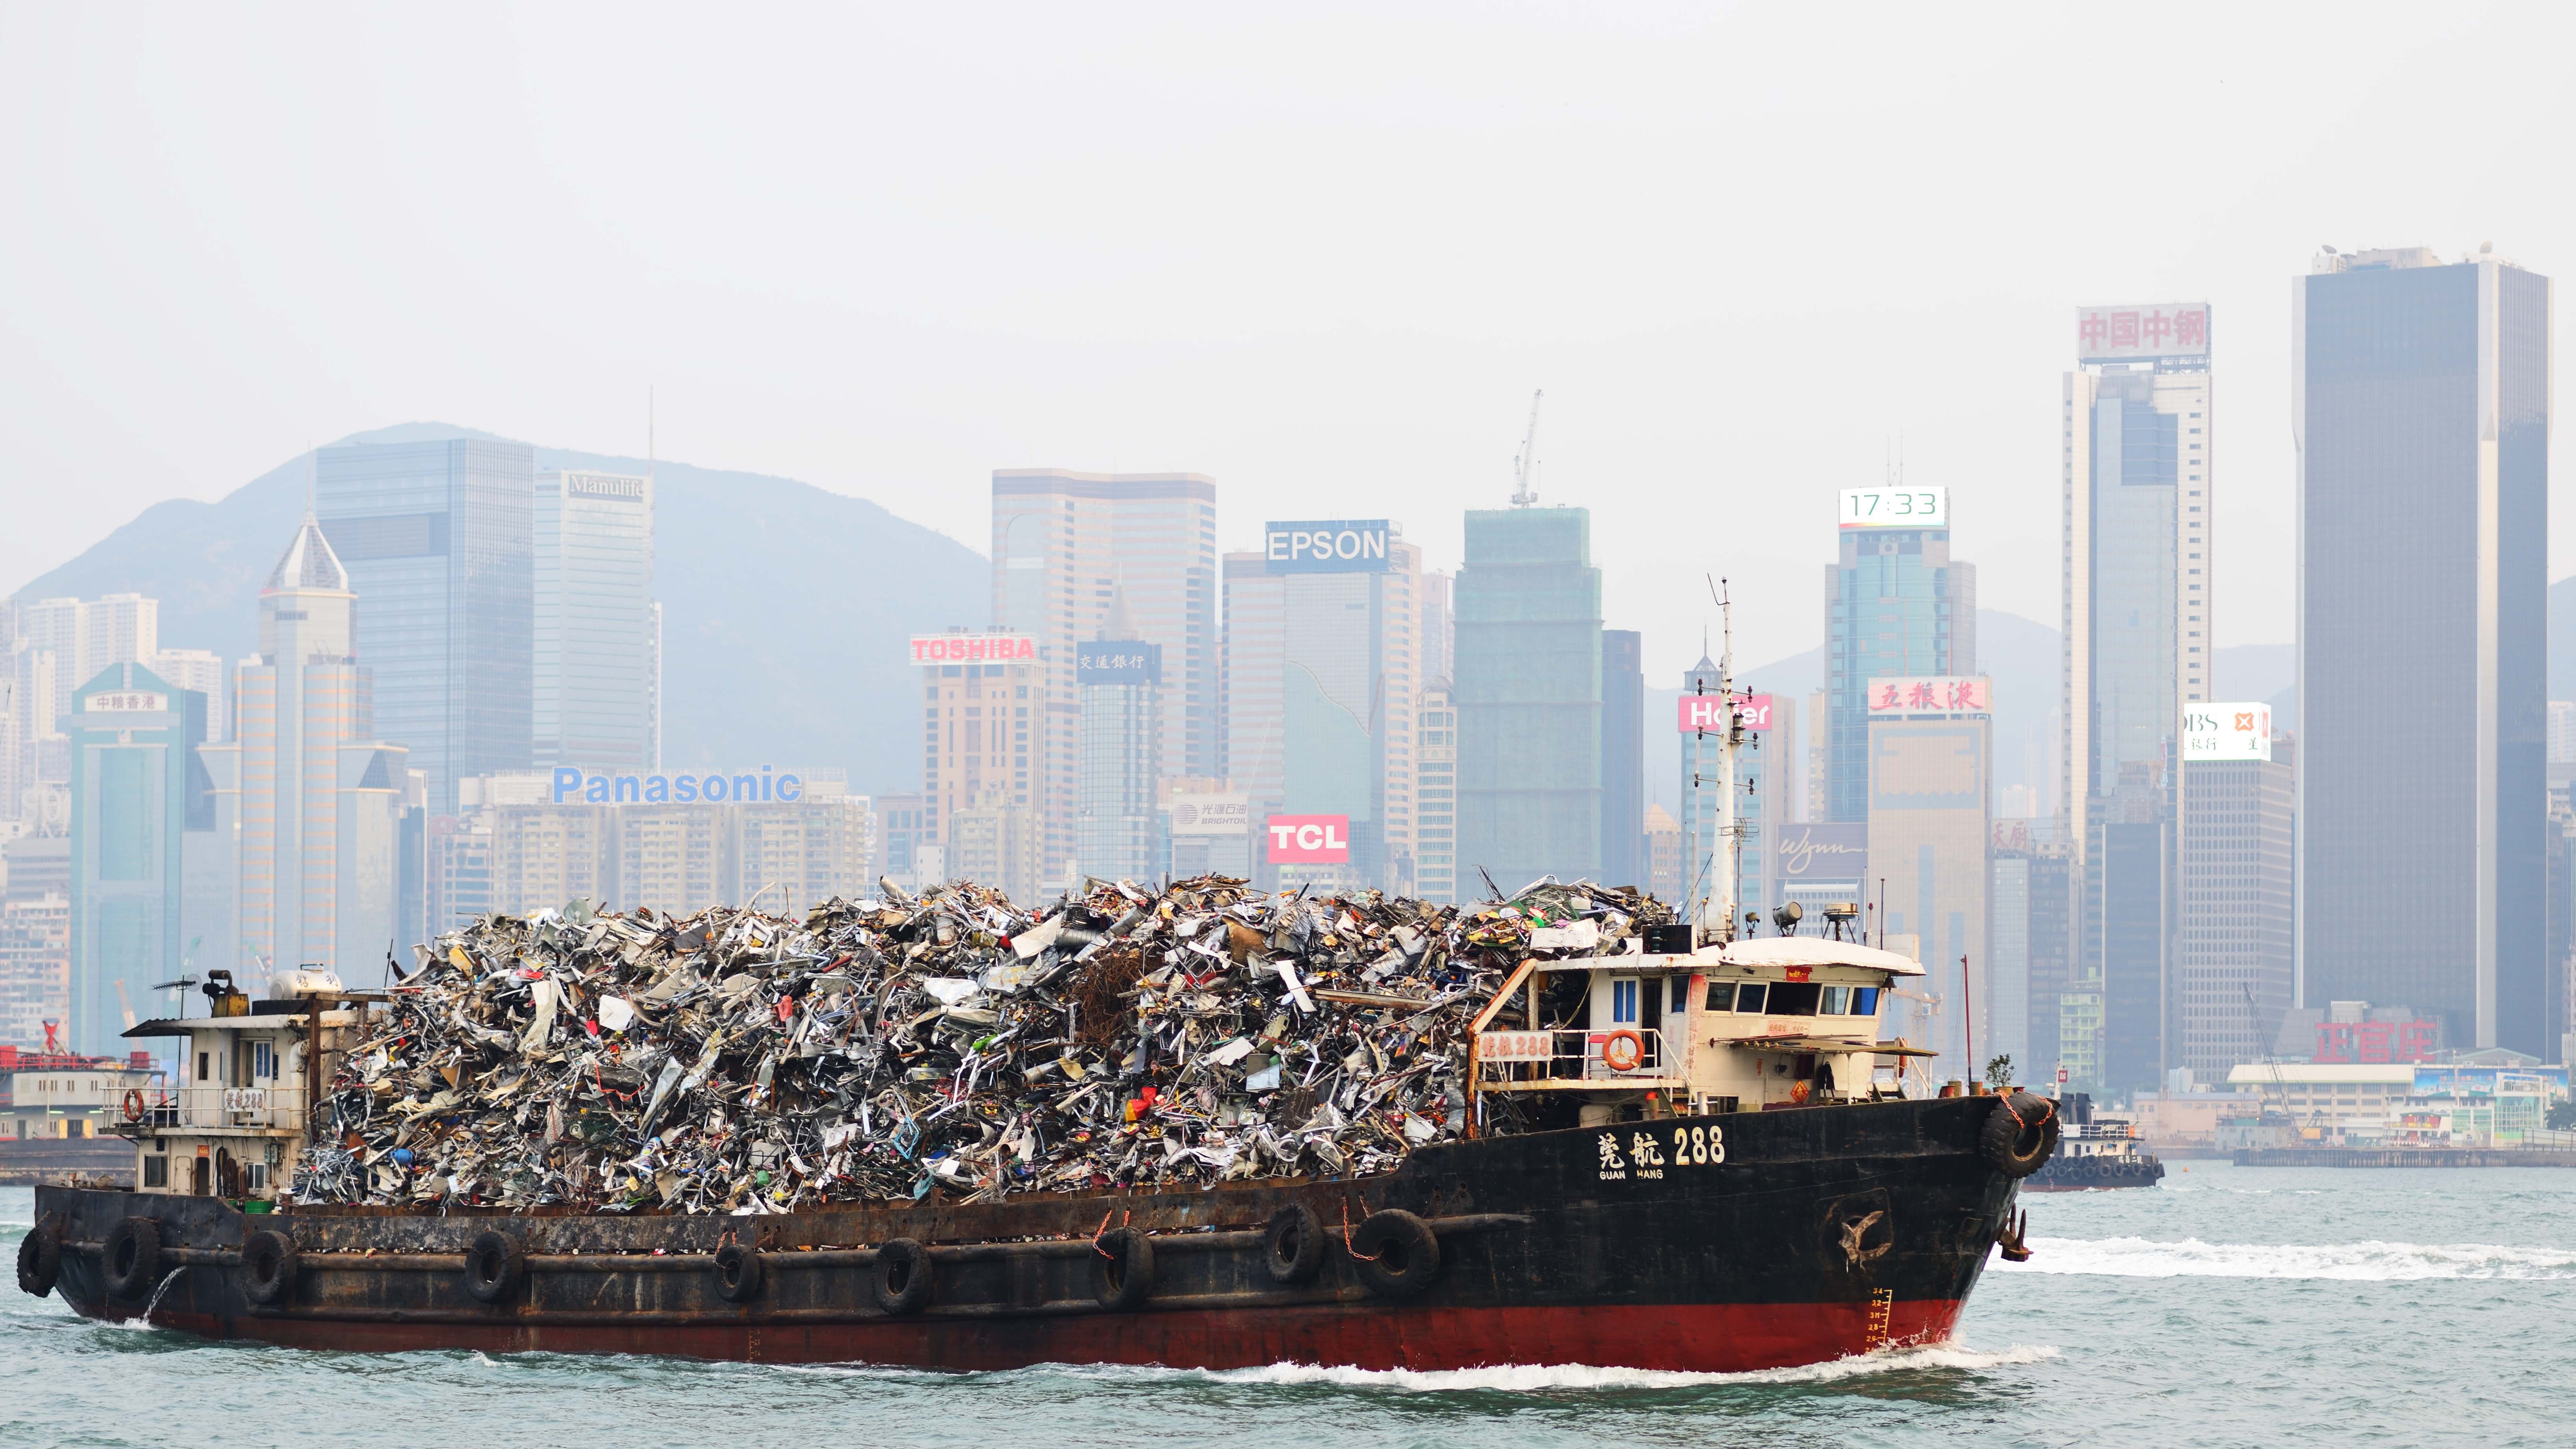 Hong Kong, China - October 8, 2012: Garbage being hauled on boat in Victoria Harbor. The dense population means its existing landfills are expected to be full by 2015. (Foto: Tomra)